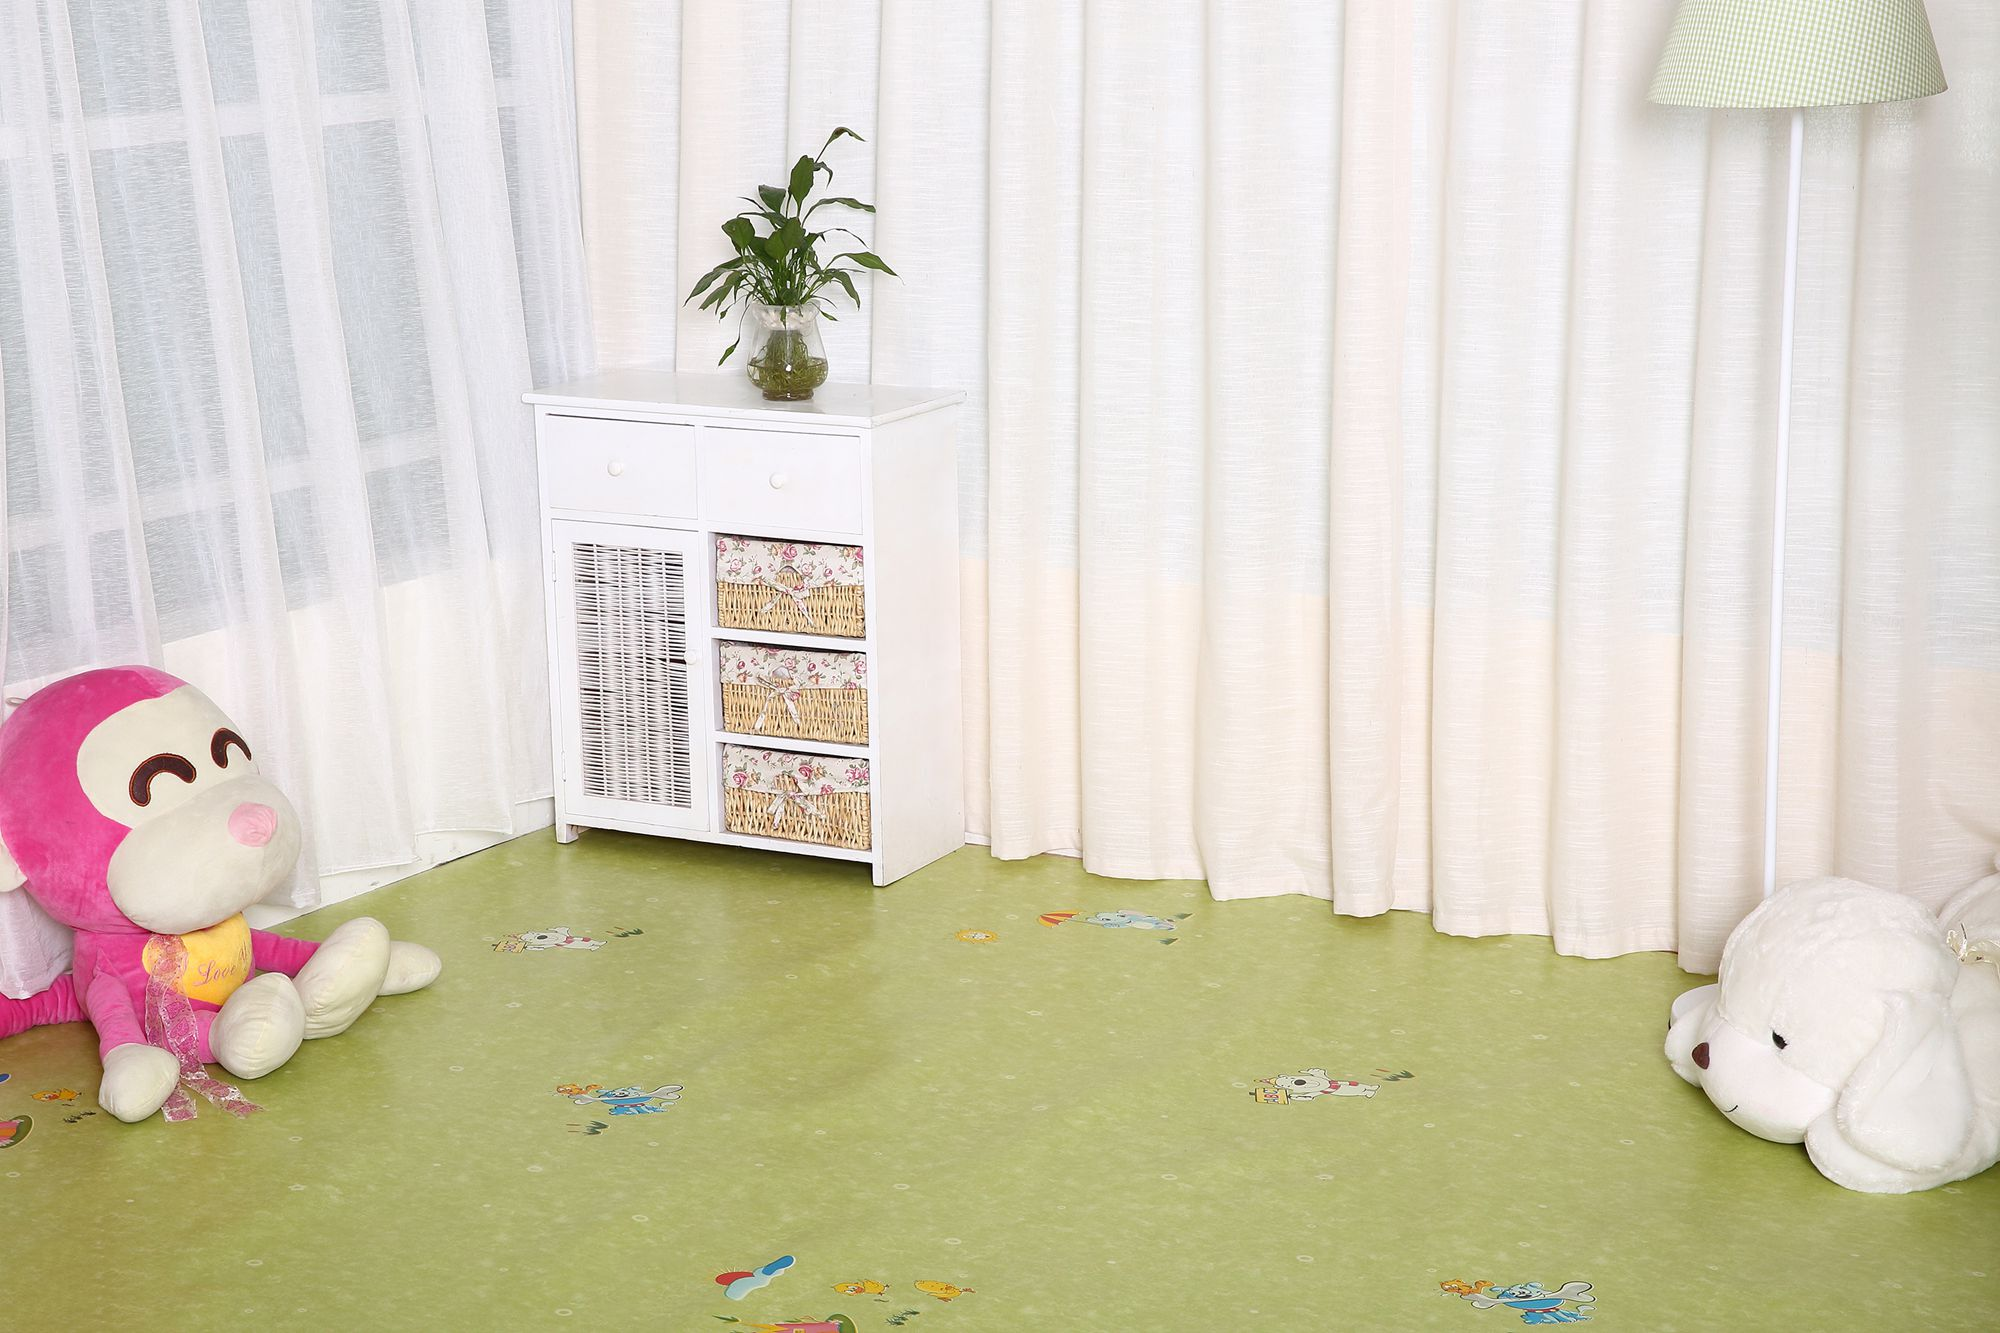 High quality home use plastic pvc vinyl flooring for promotion